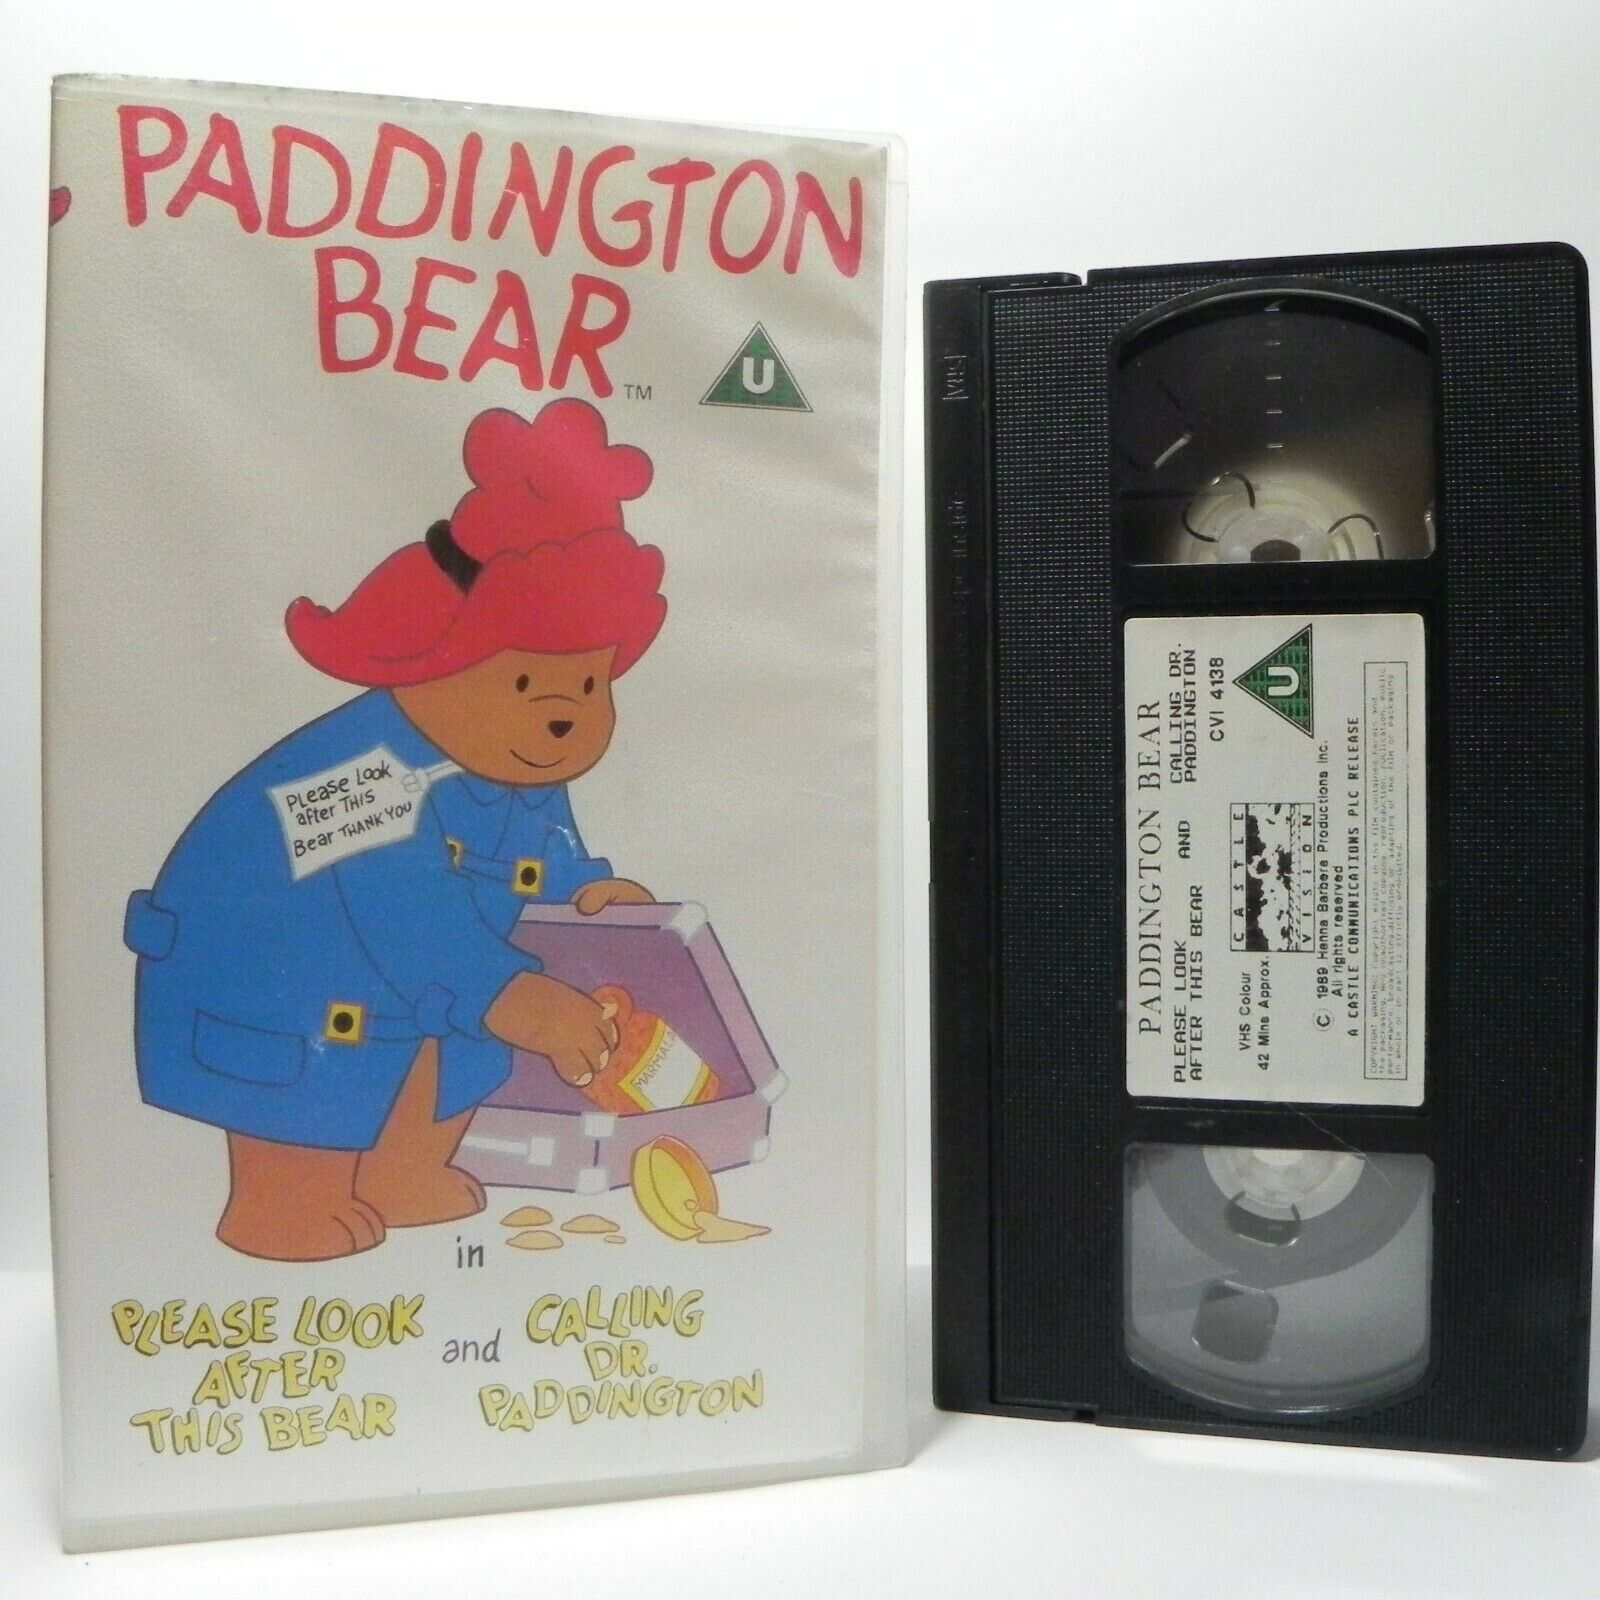 Paddington Bear: Please Look After This Bear - Classic Animation - Kids - VHS